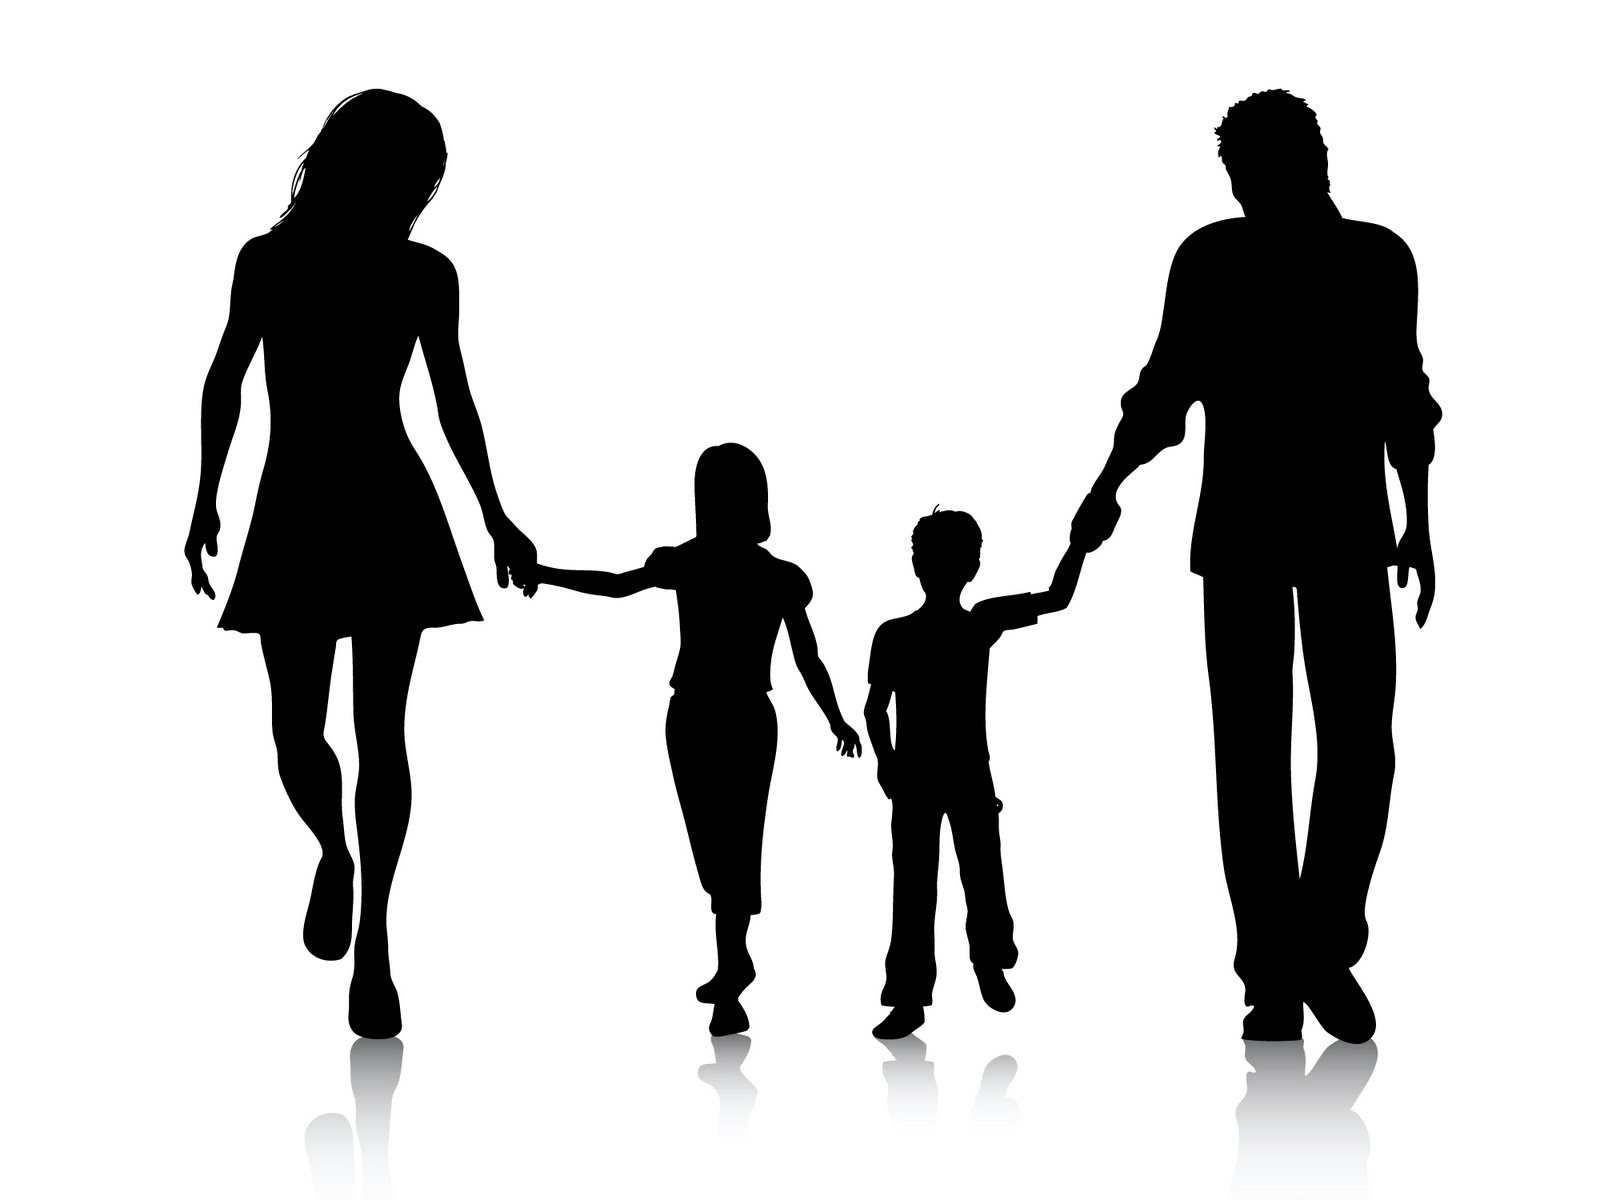 15 Family Silhouette Free Cliparts That You Can Download To You